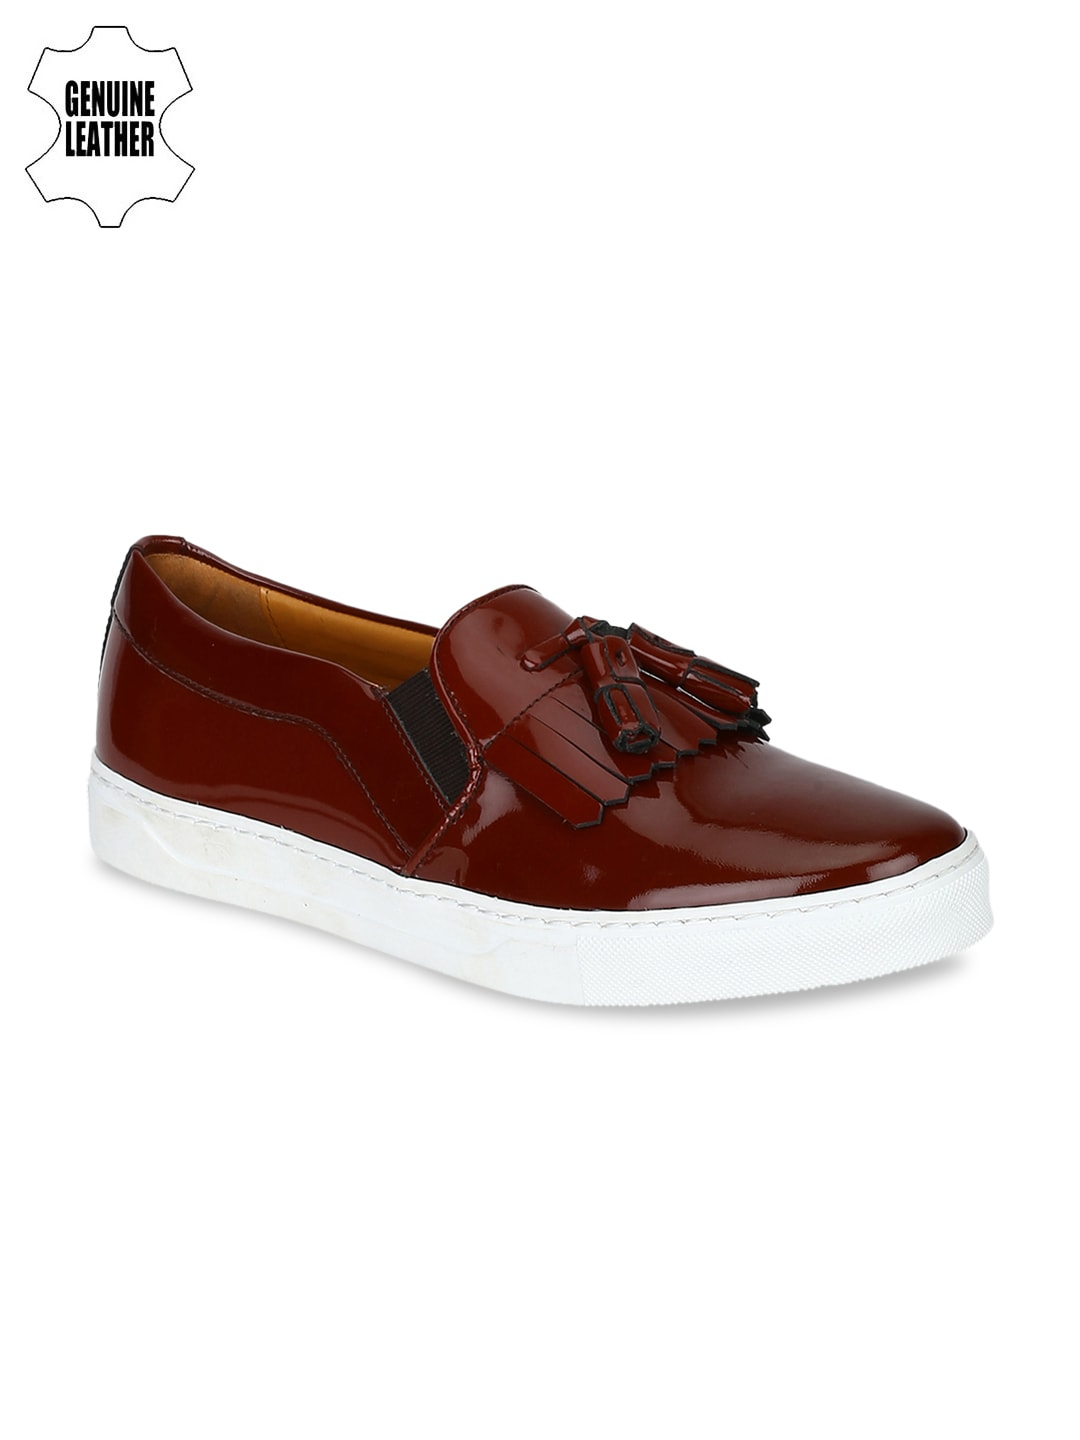 2b23b38d011 Patent Leather Shoes